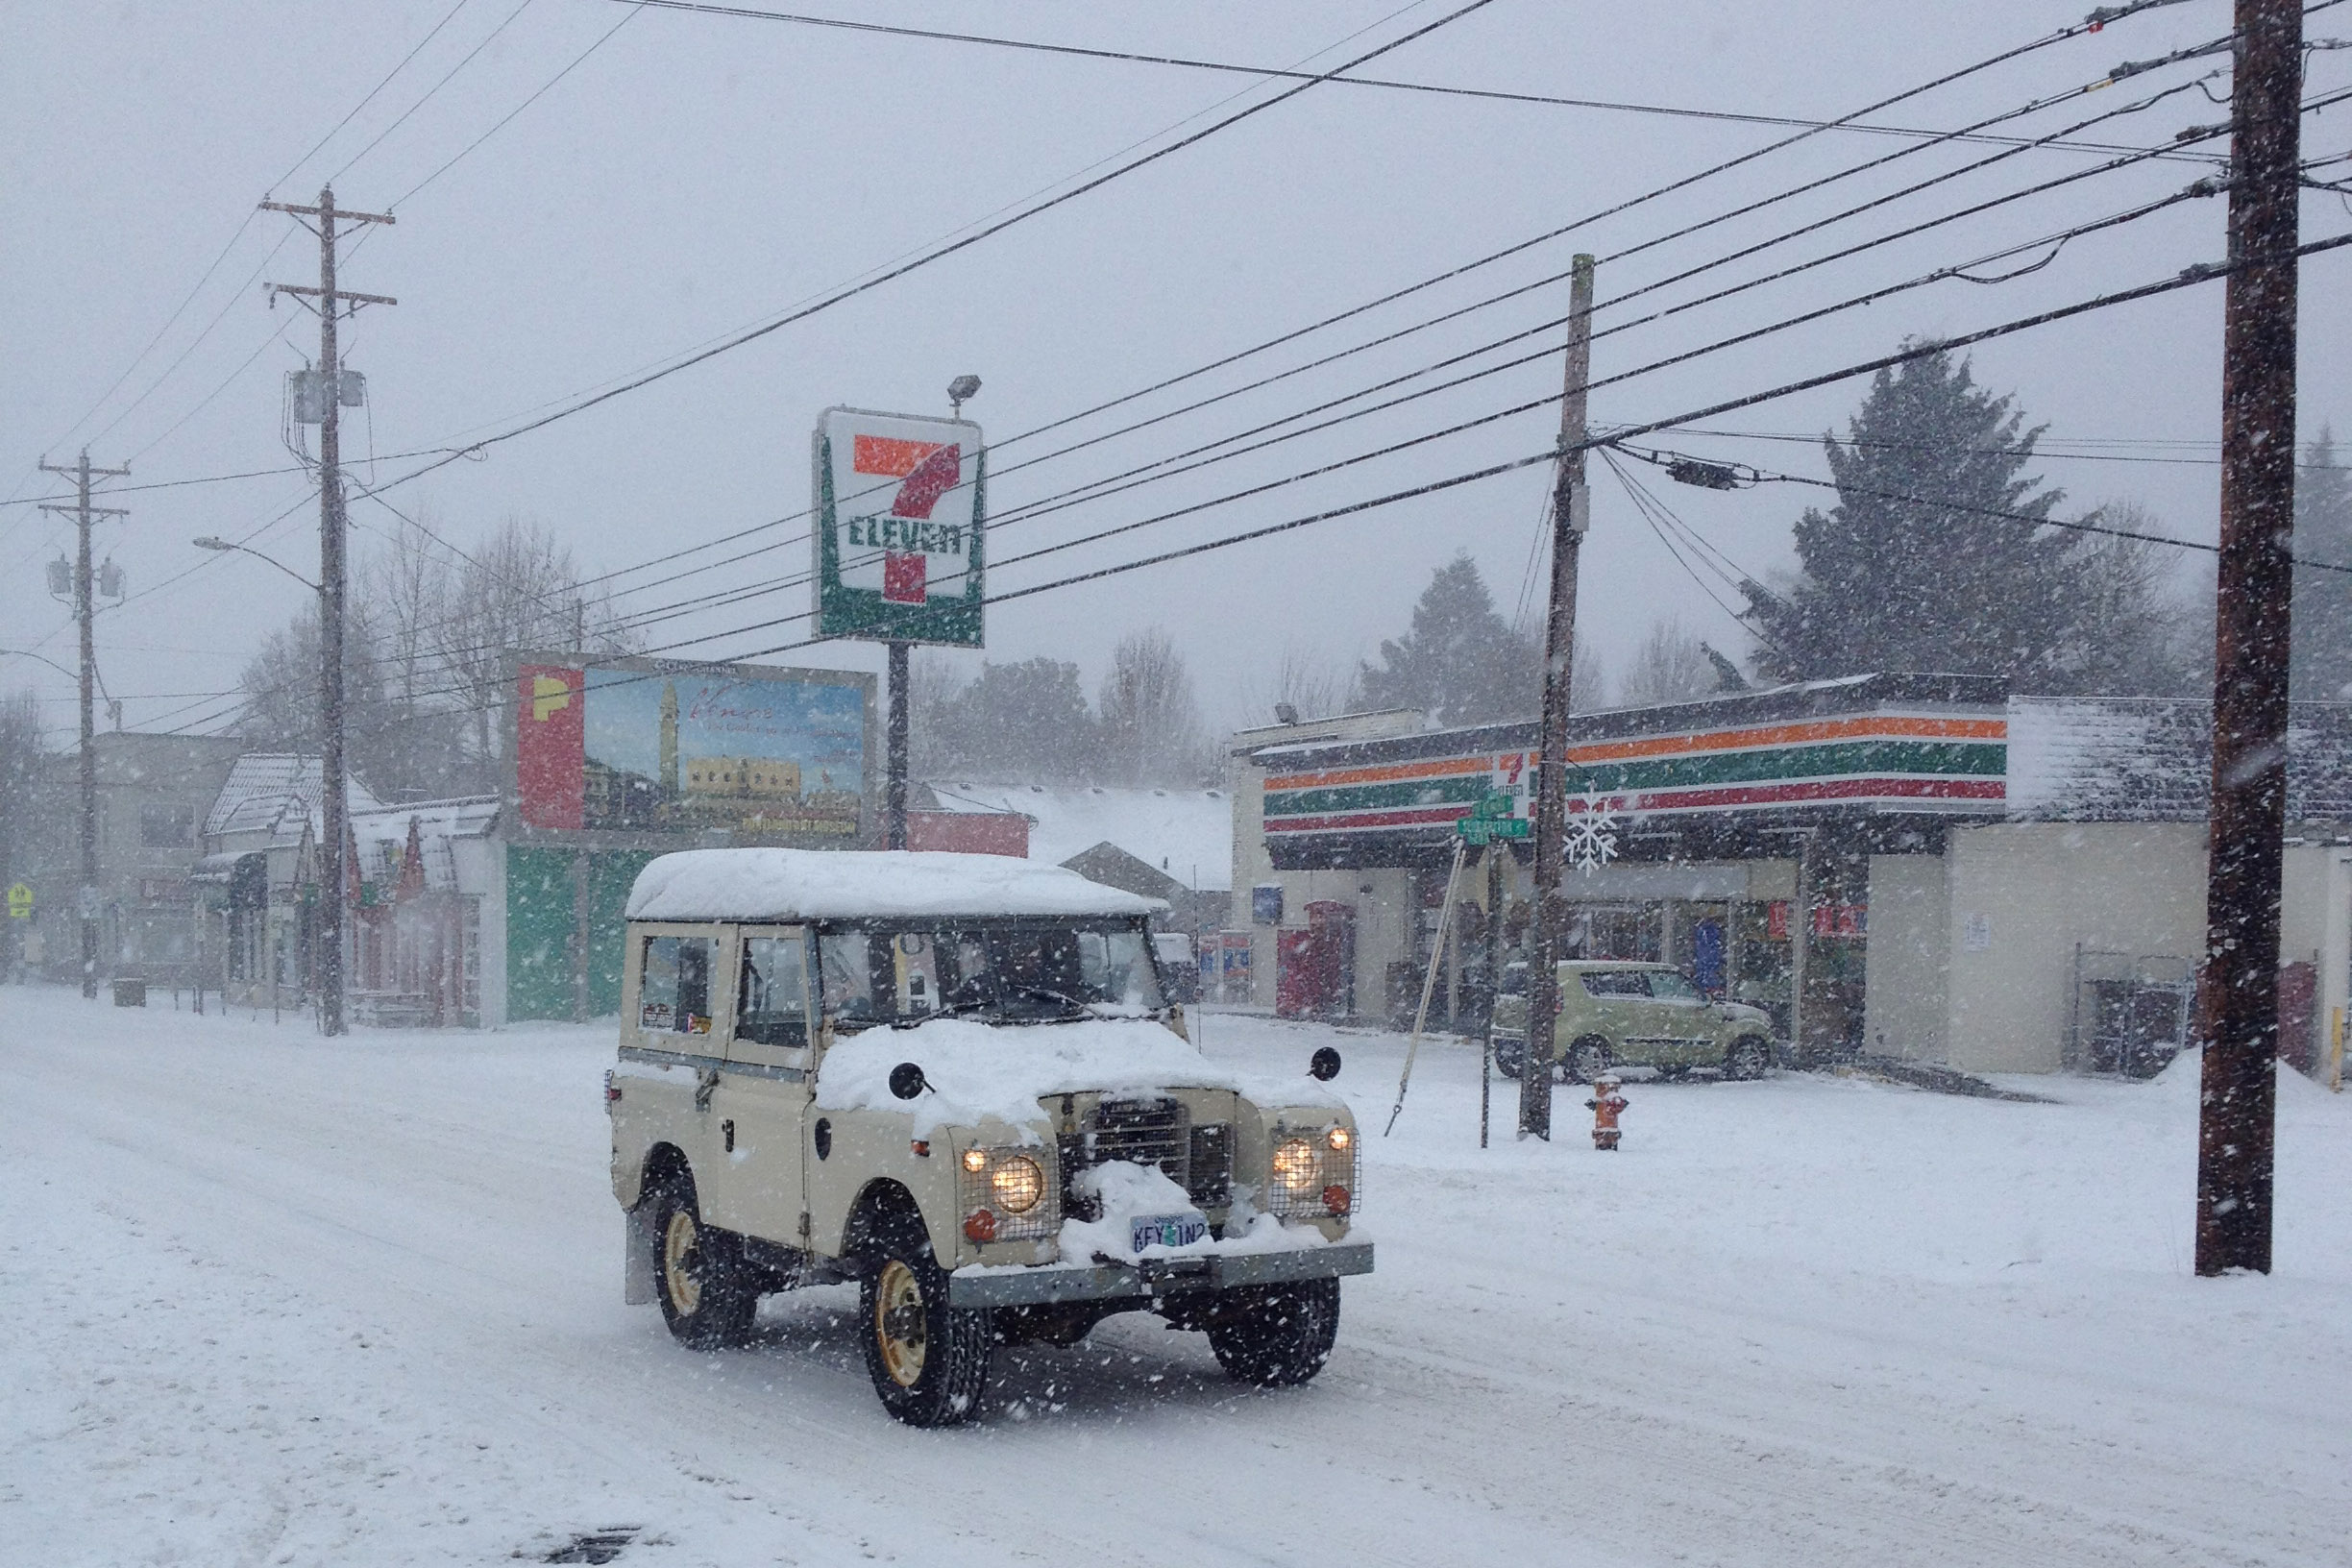 land rover + portland = squee!.